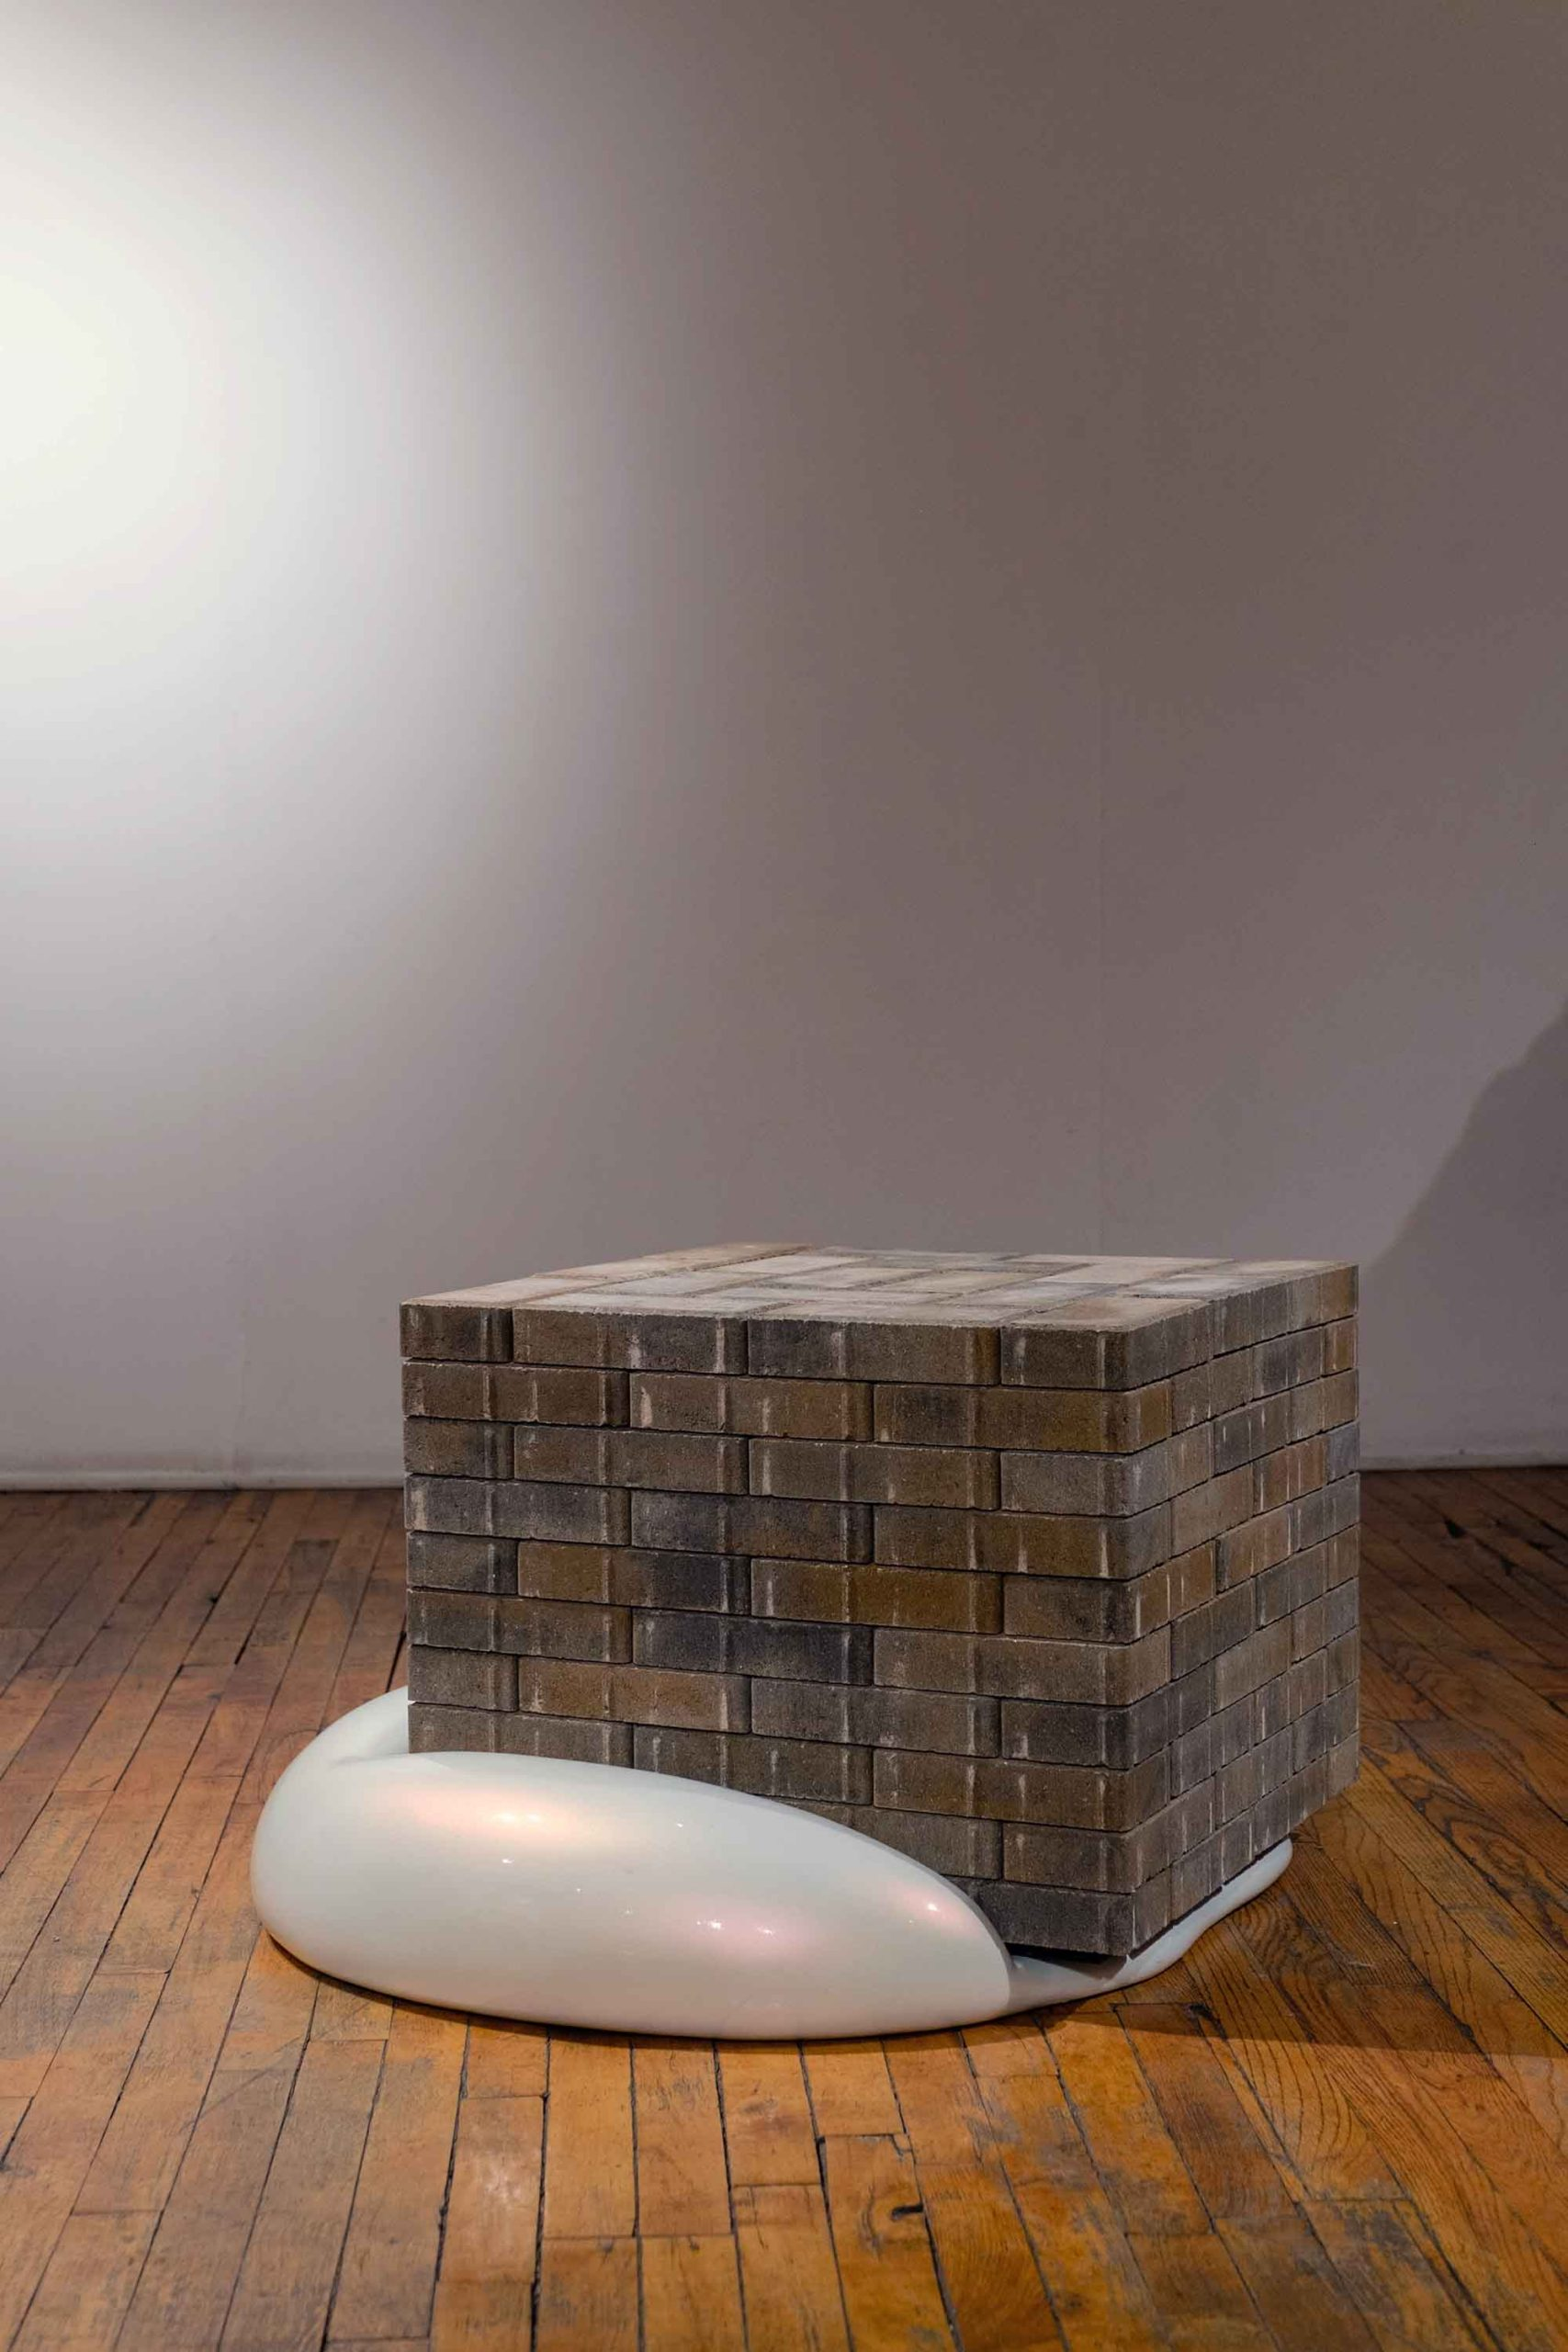 Round, organic sculpture, squashed by brick cube resting on wood floor